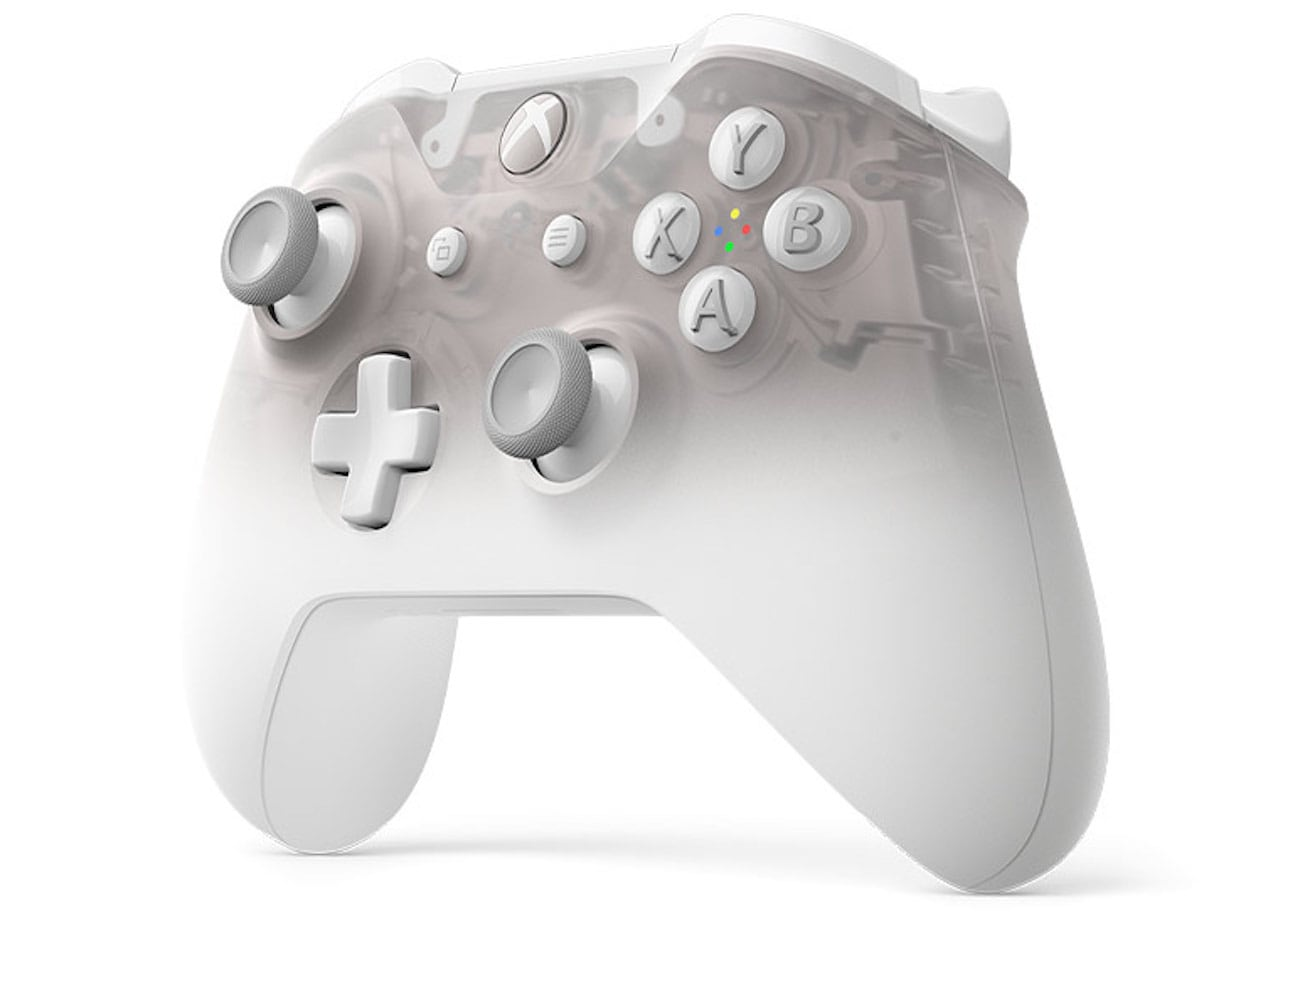 Xbox Phantom White Special Edition Wireless Controller has a translucent appearance